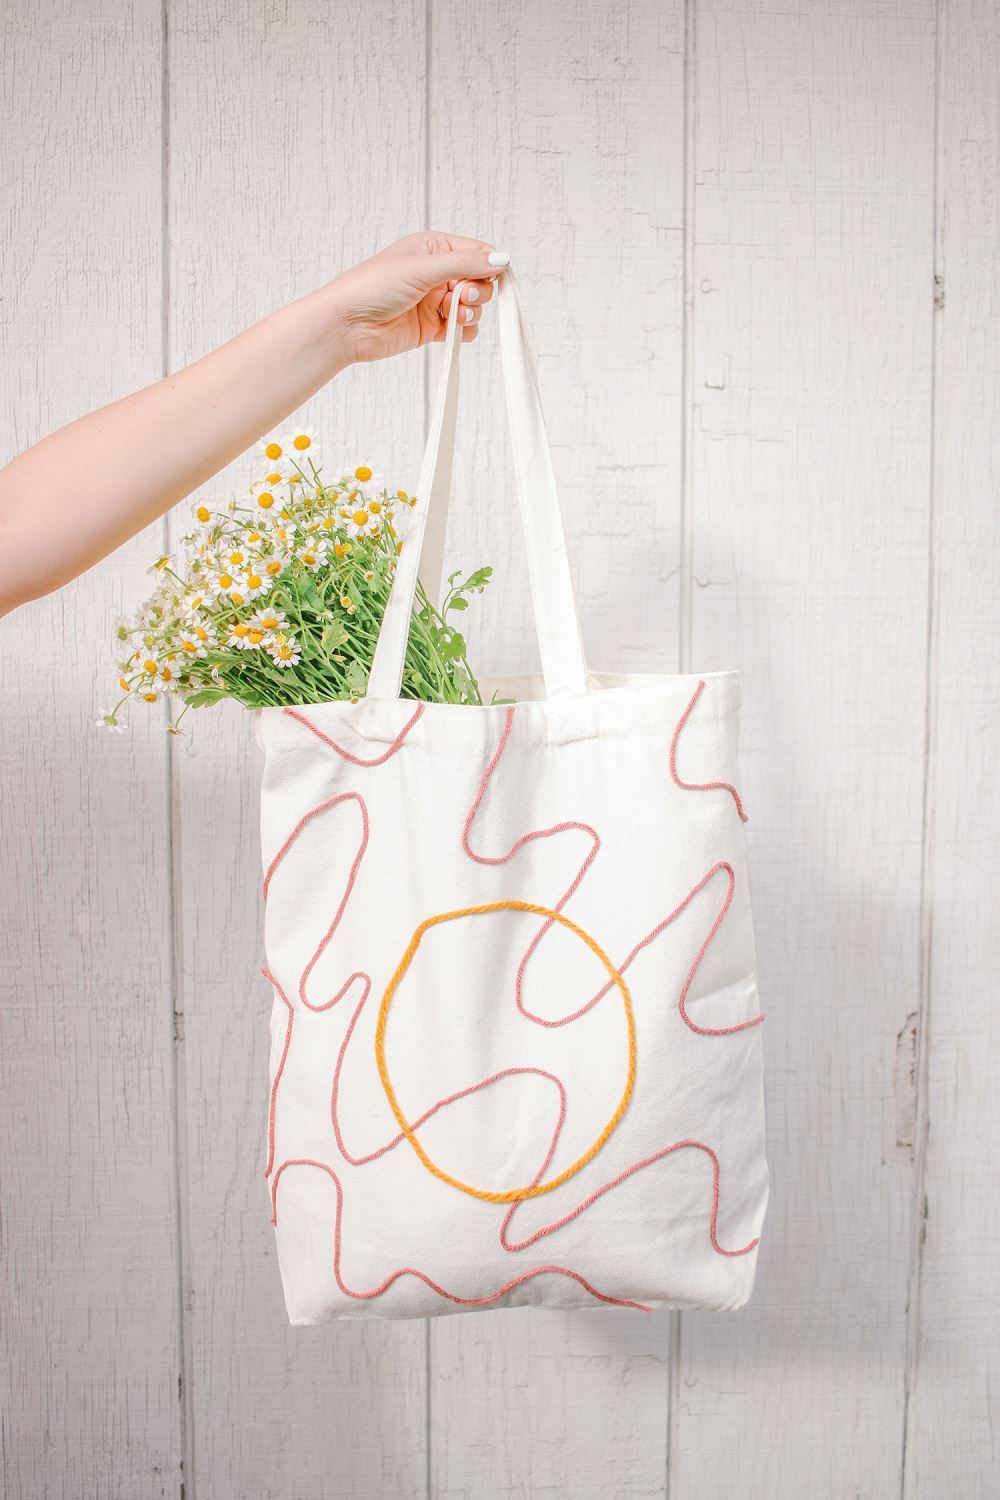 Makes a great gift and gift bag too